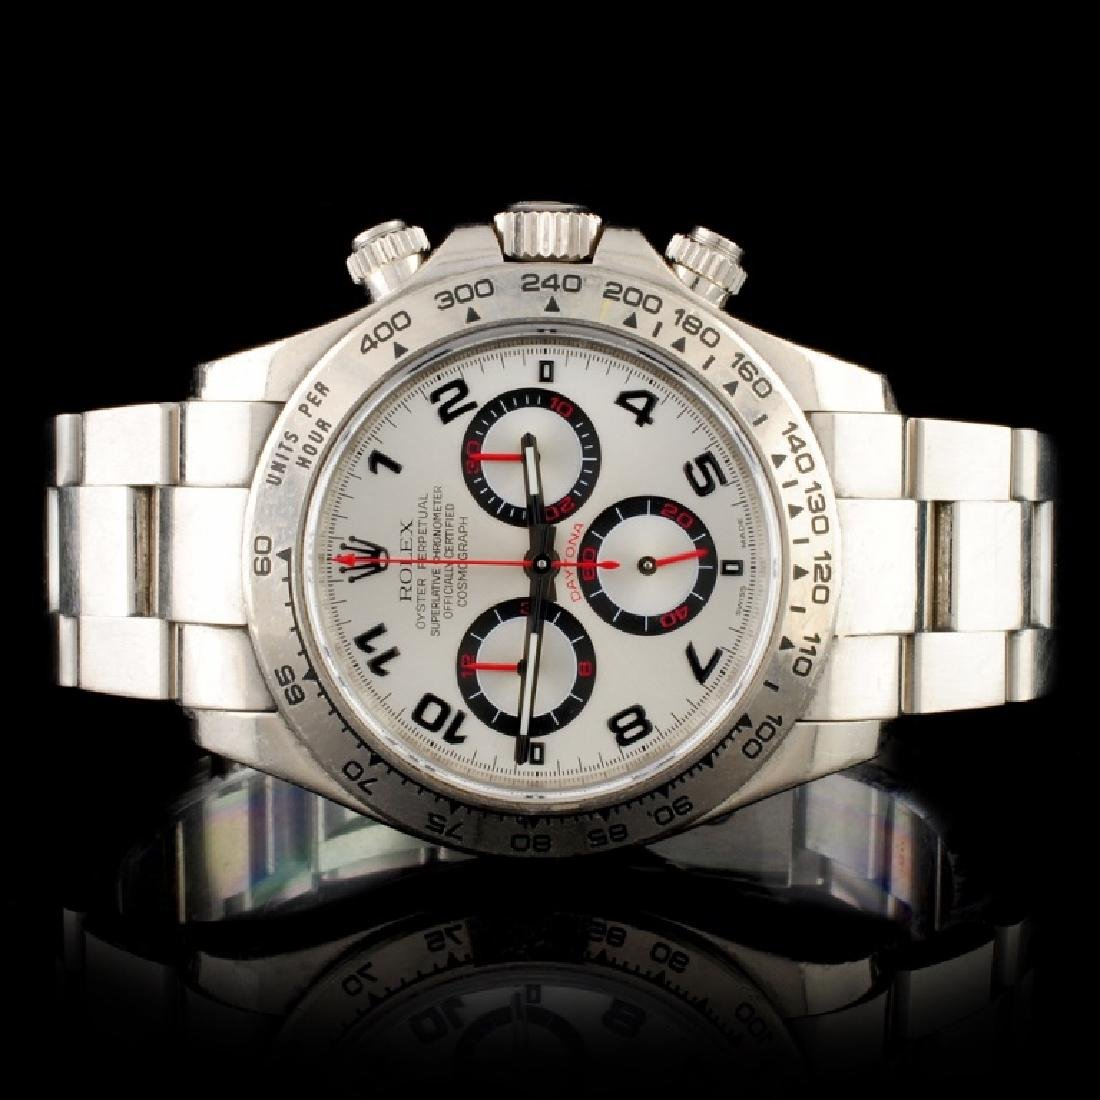 Rolex Daytona 18K White Gold Wristwatch